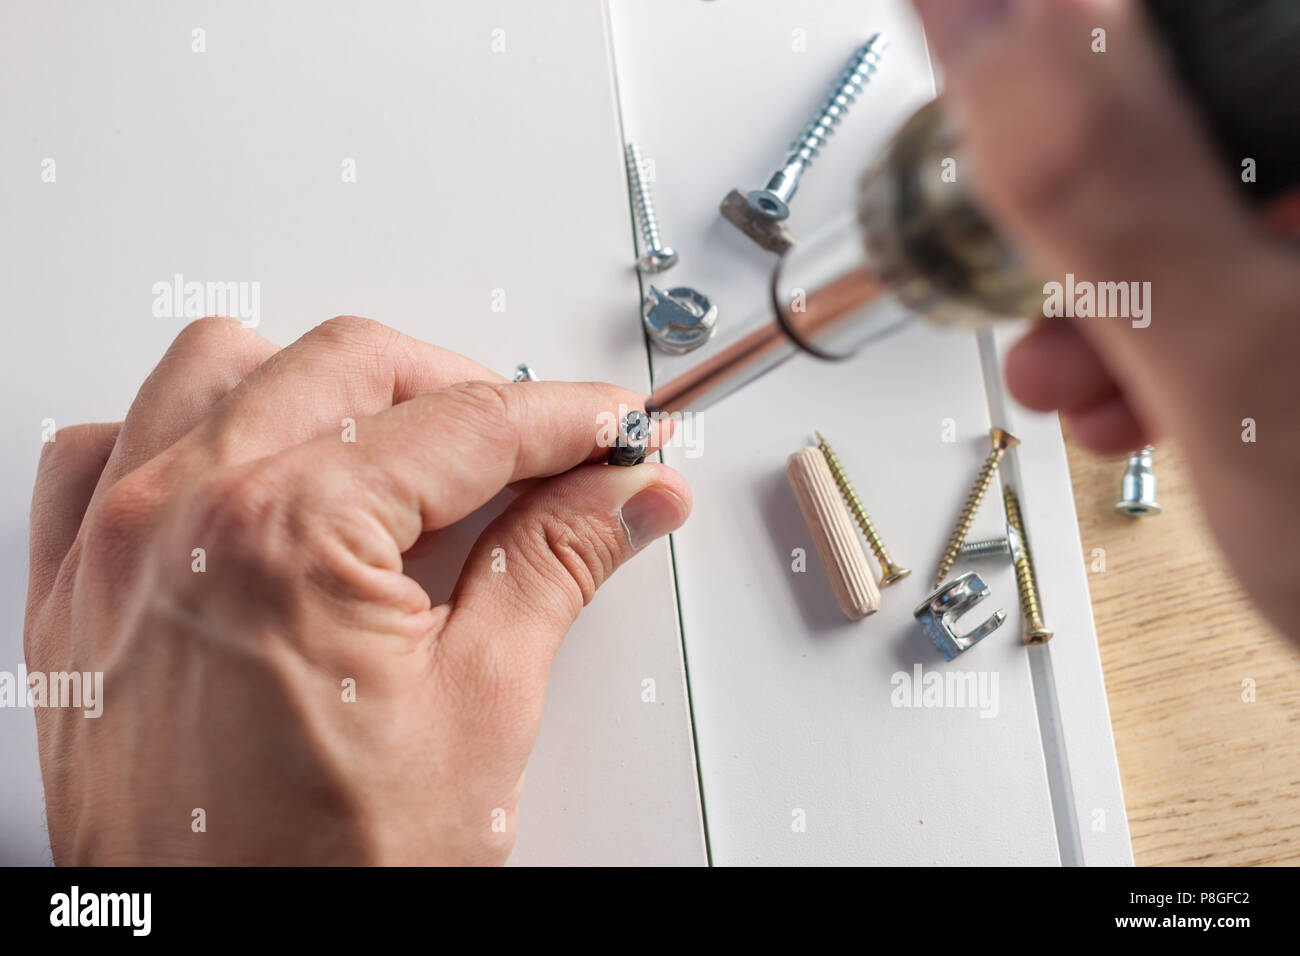 furniture assembly parts - Stock Image